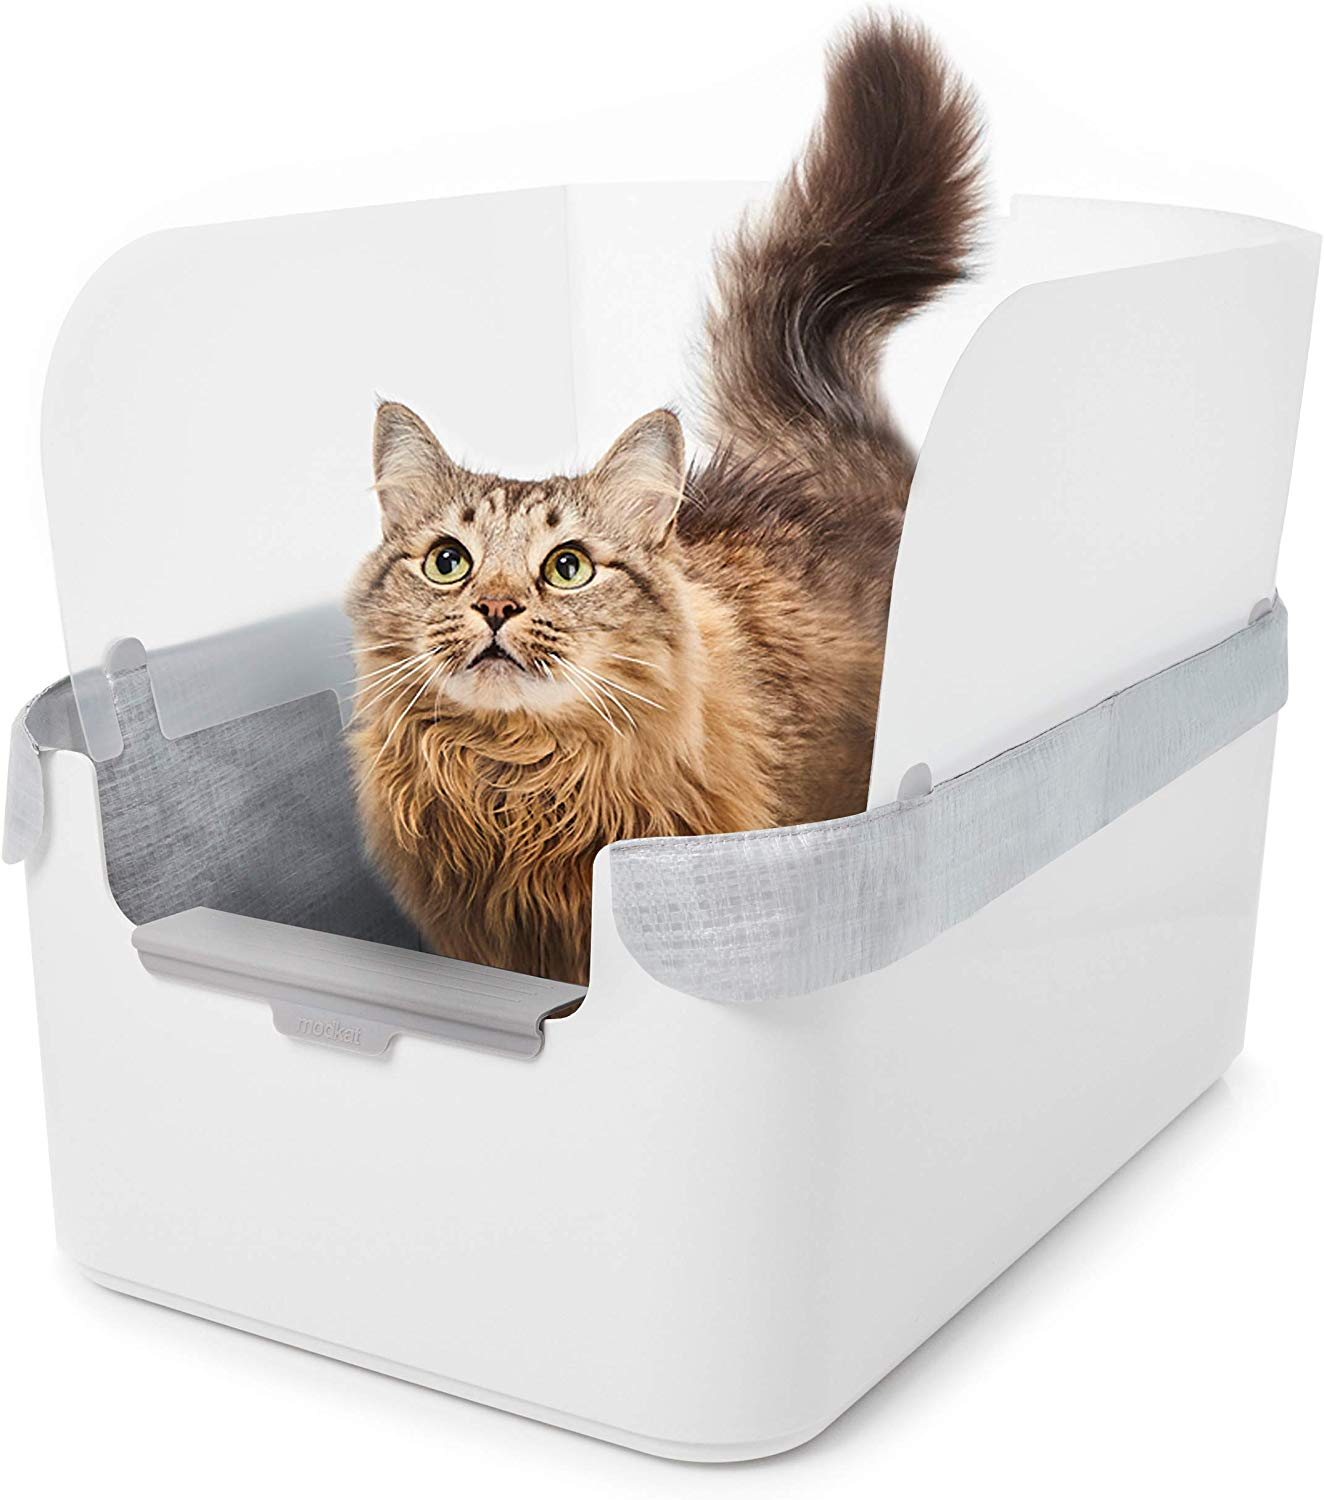 Best Litter Boxes for High Spraying Cats | High Side Litter Boxes